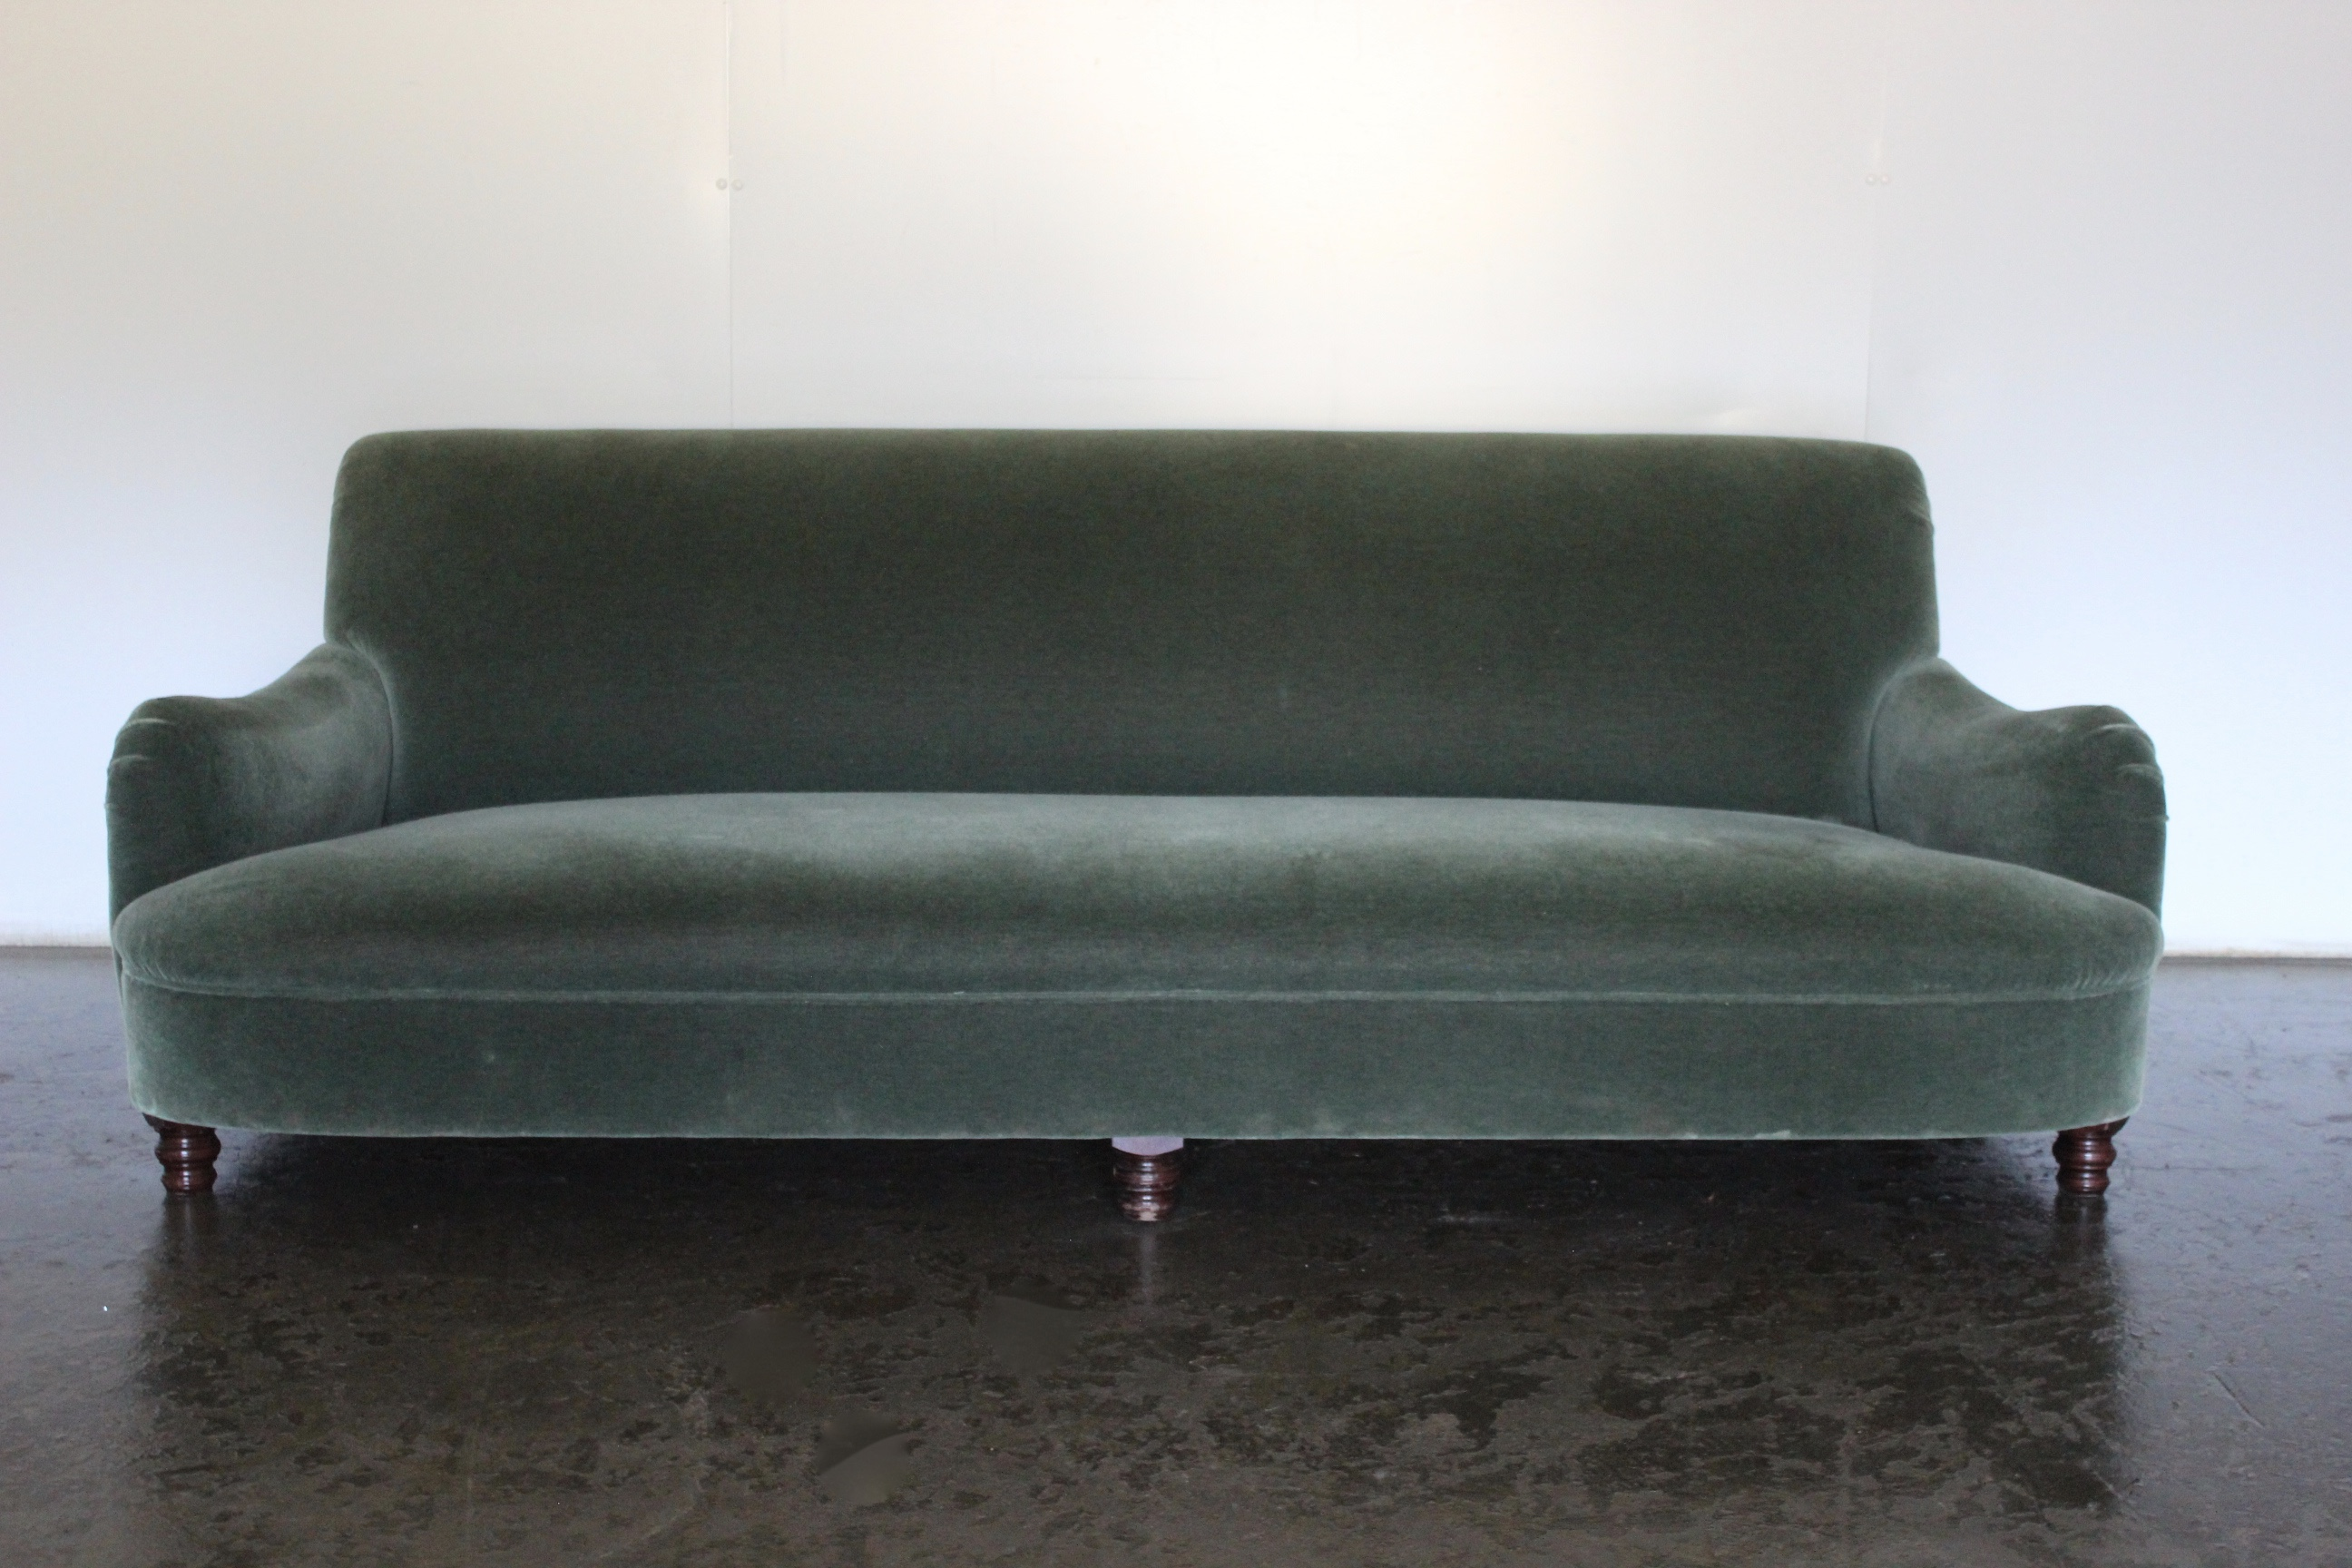 Mint Unique Special Order George Smith Jules 3 Seat Fixed Sofa In Green Mohair Velvet G S Printed Hessian Lord Browns